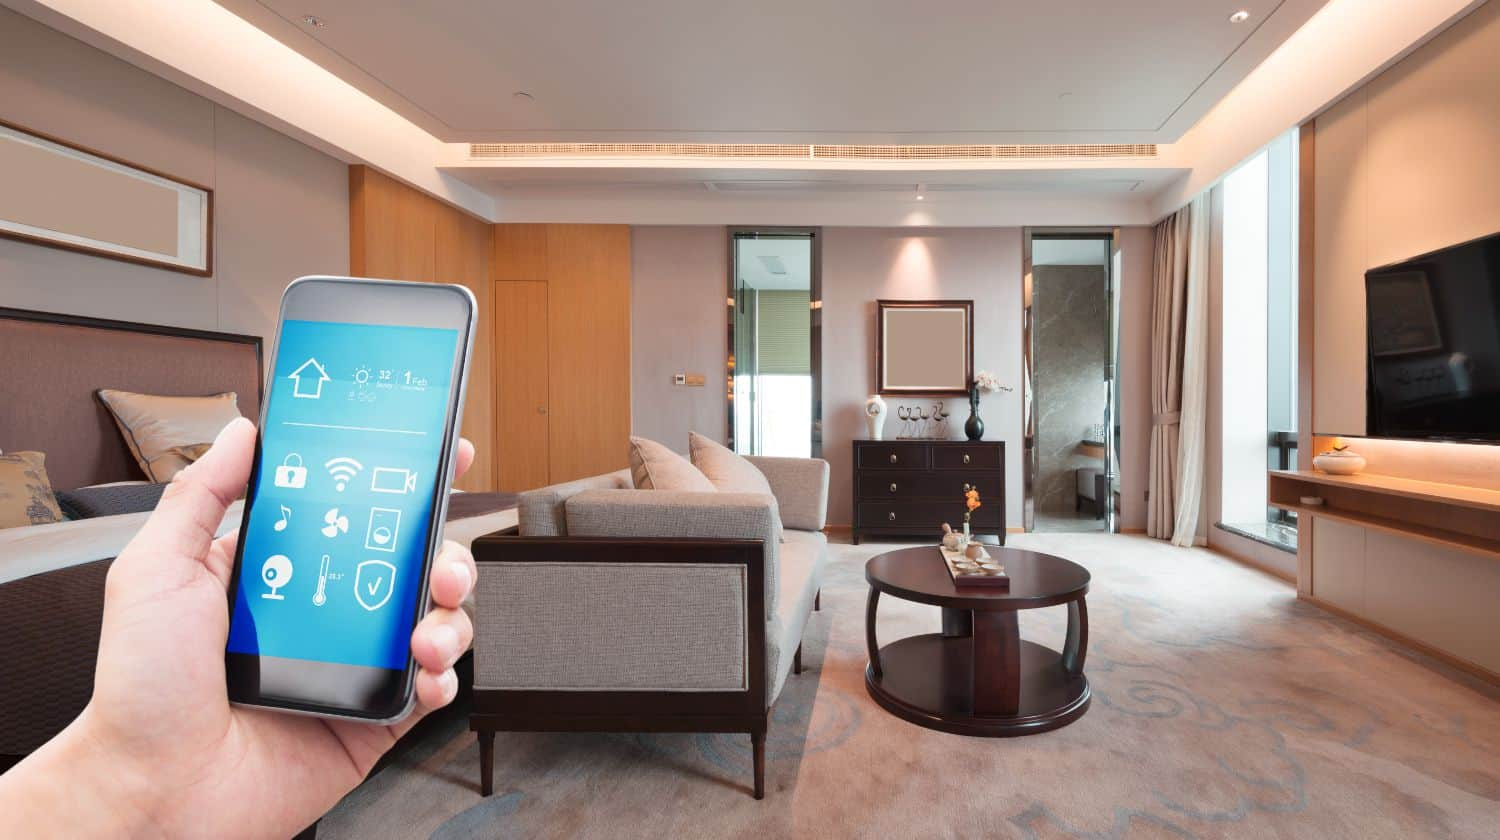 Feature | This Is Why Your Home Needs A Smart Light Switch | smart light bulbs